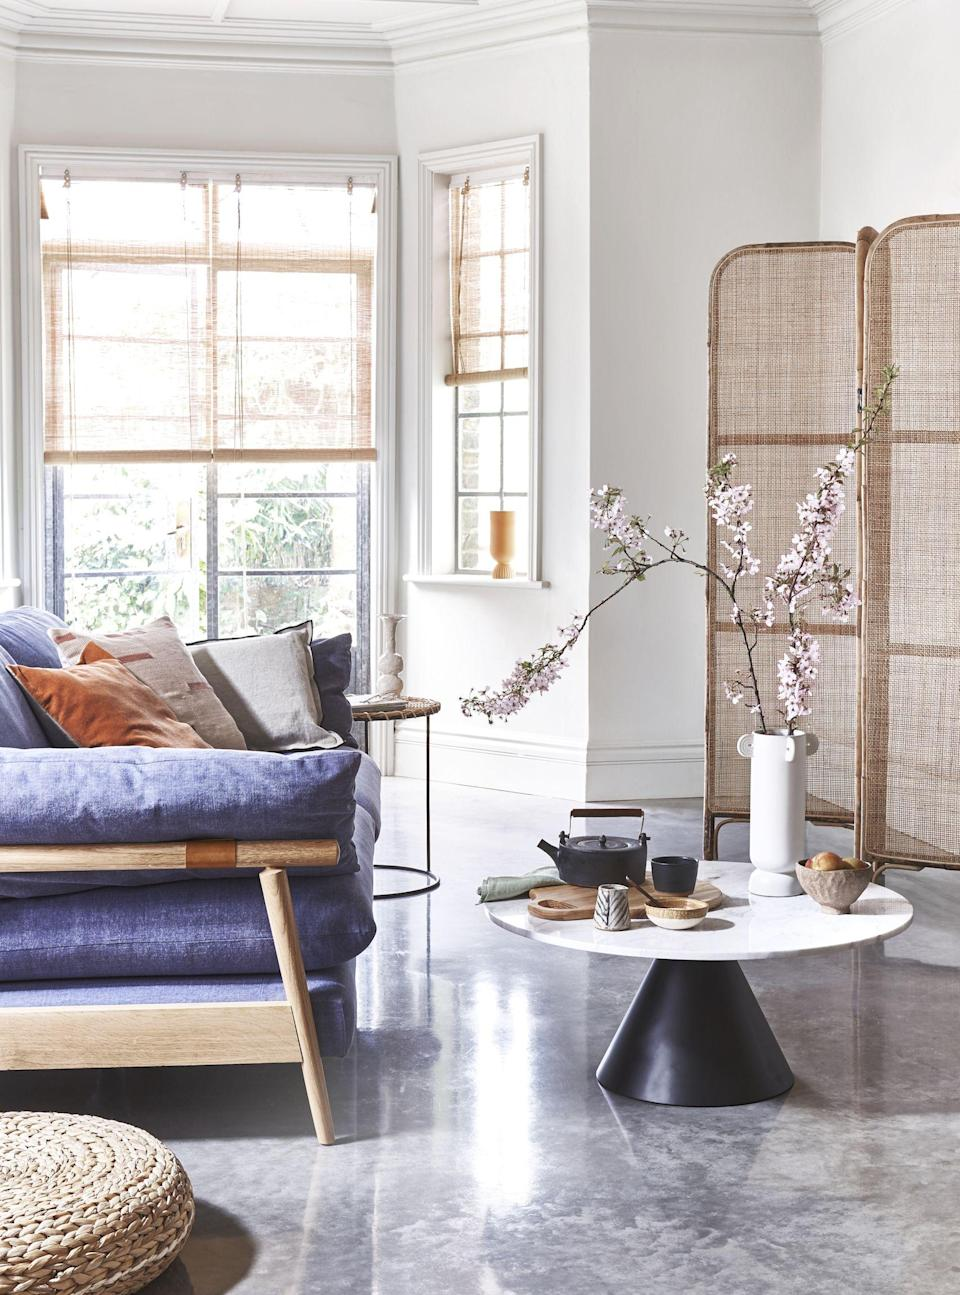 """<p><strong>Combining the clean lines of Japanese design with the understated beauty of Scandi style, Japandi will turn your home into a calming retreat.</strong> </p><p>Cosy but simplistic, this classic and timeless look encompasses a neutral palette and natural materials, combined with sculptural, sleek shapes and decorative touches celebrating texture and asymmetry. It focuses on simplicity, functionality and fluidity and provides us with a sense of reliability, certainty and comfort in our living space.</p><p>'Think of Japandi as Japanese minimalism – simple lines, neutral colours and big leafy houseplants,' says Jules Upton of Oval Interiors and interior designer for <a href=""""http://northsands.uk/"""" rel=""""nofollow noopener"""" target=""""_blank"""" data-ylk=""""slk:North Sands Developments"""" class=""""link rapid-noclick-resp"""">North Sands Developments</a>. 'The simplistic, natural elements of both Scandinavian and Japanese décor make this trend an easy one to get right.'</p><p>Japandi, also sometimes referred to as Scandinese or Japanordic, is not a new trend, having garnered interest back in 2017. Despite this, it's been popping up on countless 2021 interior trend lists, which isn't surprising. In many ways, the Japandi aesthetic caters to our desire to create a <a href=""""https://www.housebeautiful.com/uk/decorate/a33635574/zen-home/"""" rel=""""nofollow noopener"""" target=""""_blank"""" data-ylk=""""slk:zen space"""" class=""""link rapid-noclick-resp"""">zen space</a> and a sense of harmony in our homes – needed now more than ever as a result of the pandemic and the unpredictability of the outside world. </p><p>In fact, according to <a href=""""https://lifeathome.ikea.com/"""" rel=""""nofollow noopener"""" target=""""_blank"""" data-ylk=""""slk:IKEA's Life at Home report"""" class=""""link rapid-noclick-resp"""">IKEA's Life at Home report</a>, three quarters of us believe that home has been our sanctuary during the pandemic, and the number one place where we have felt most secure.</p><p>Feeling inspired to bring the Japandi look into """